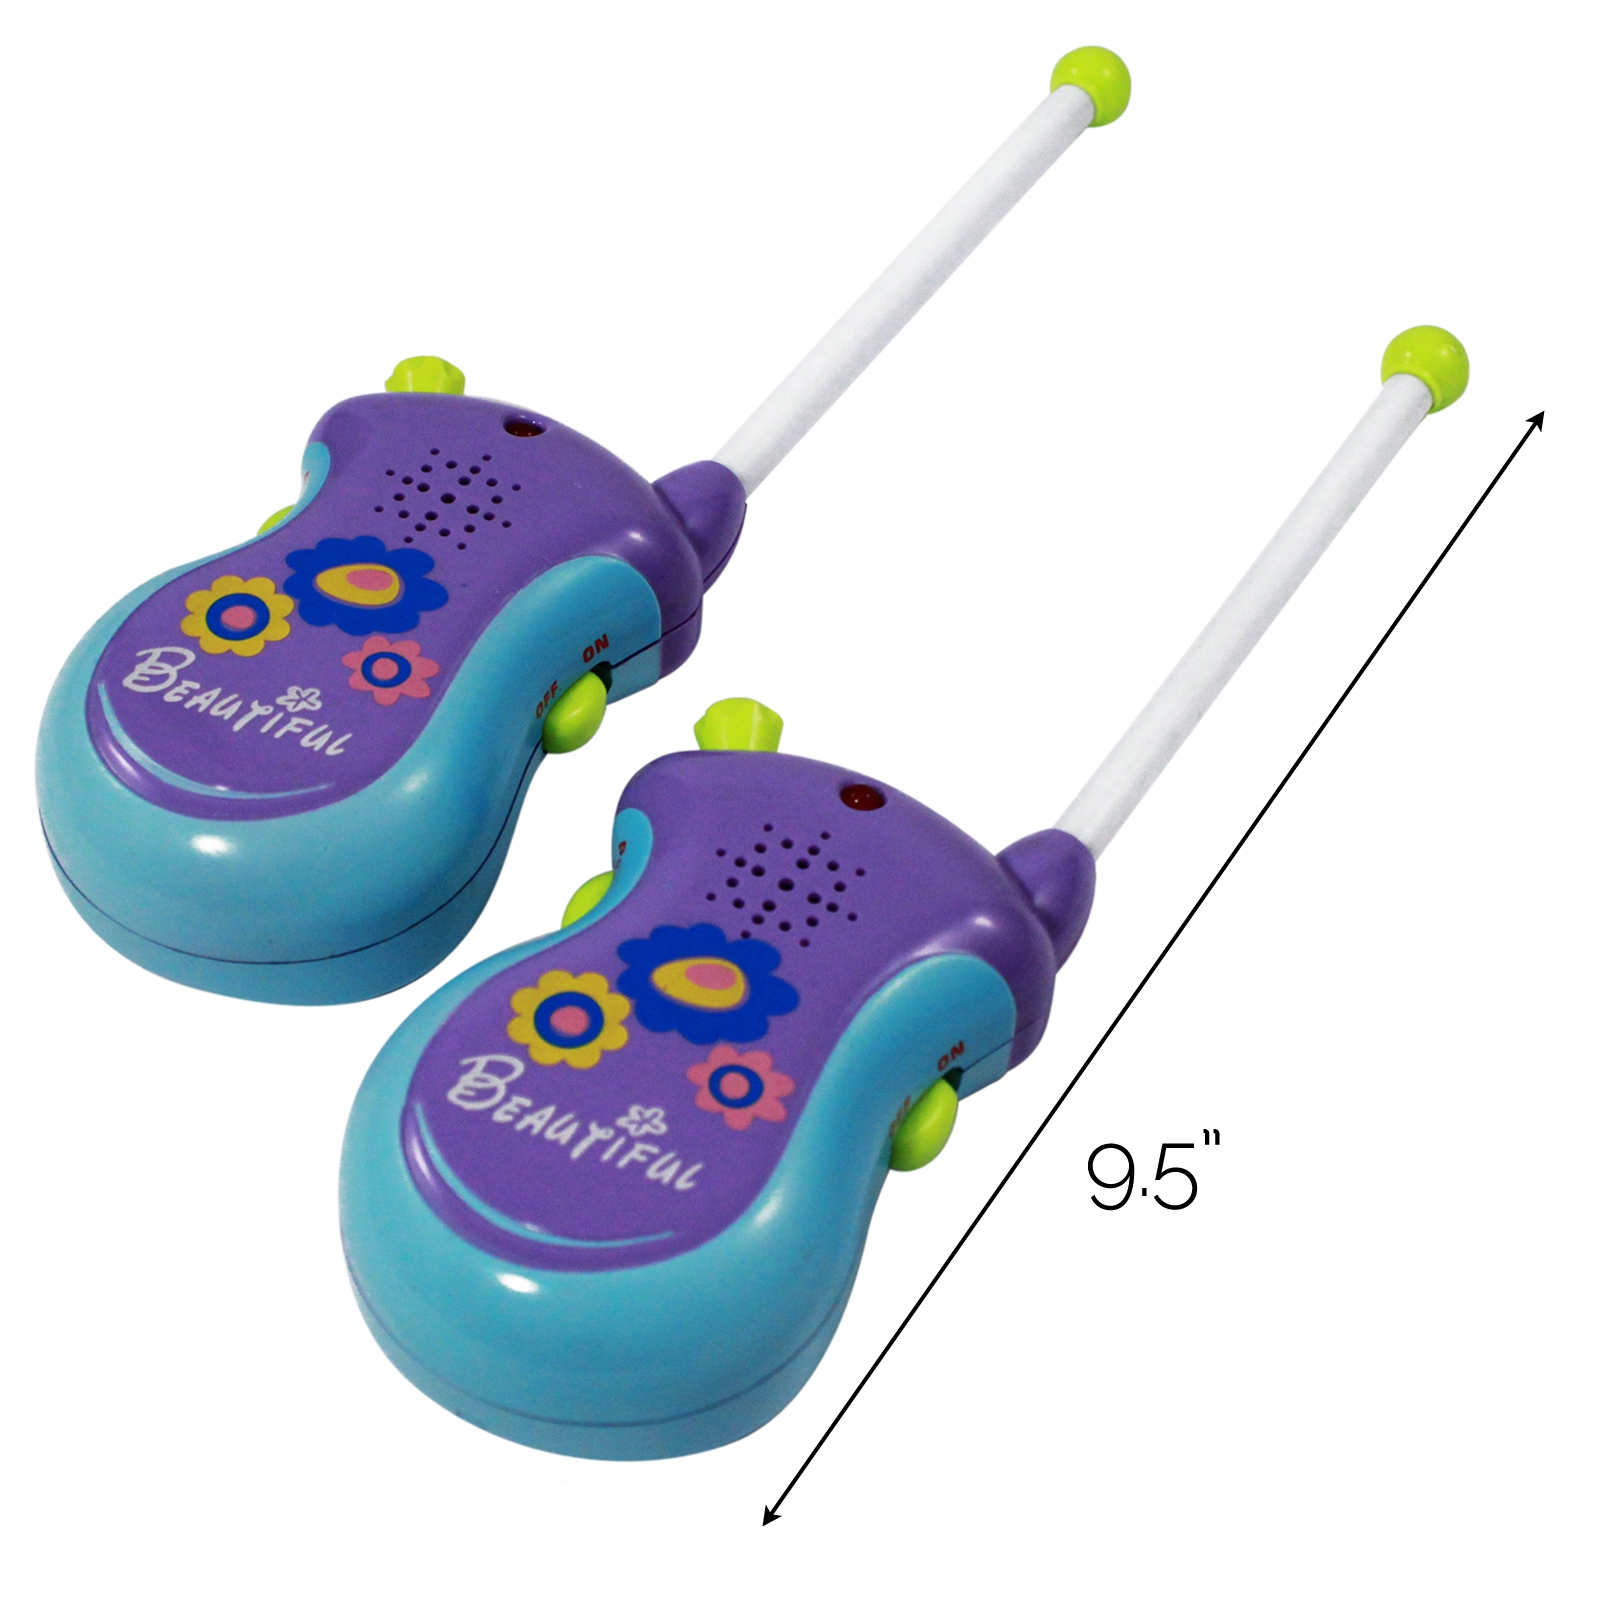 (2 Pack) Girls Purple Walkie Talkies 2 Way Radio Communication Play Set - Purple